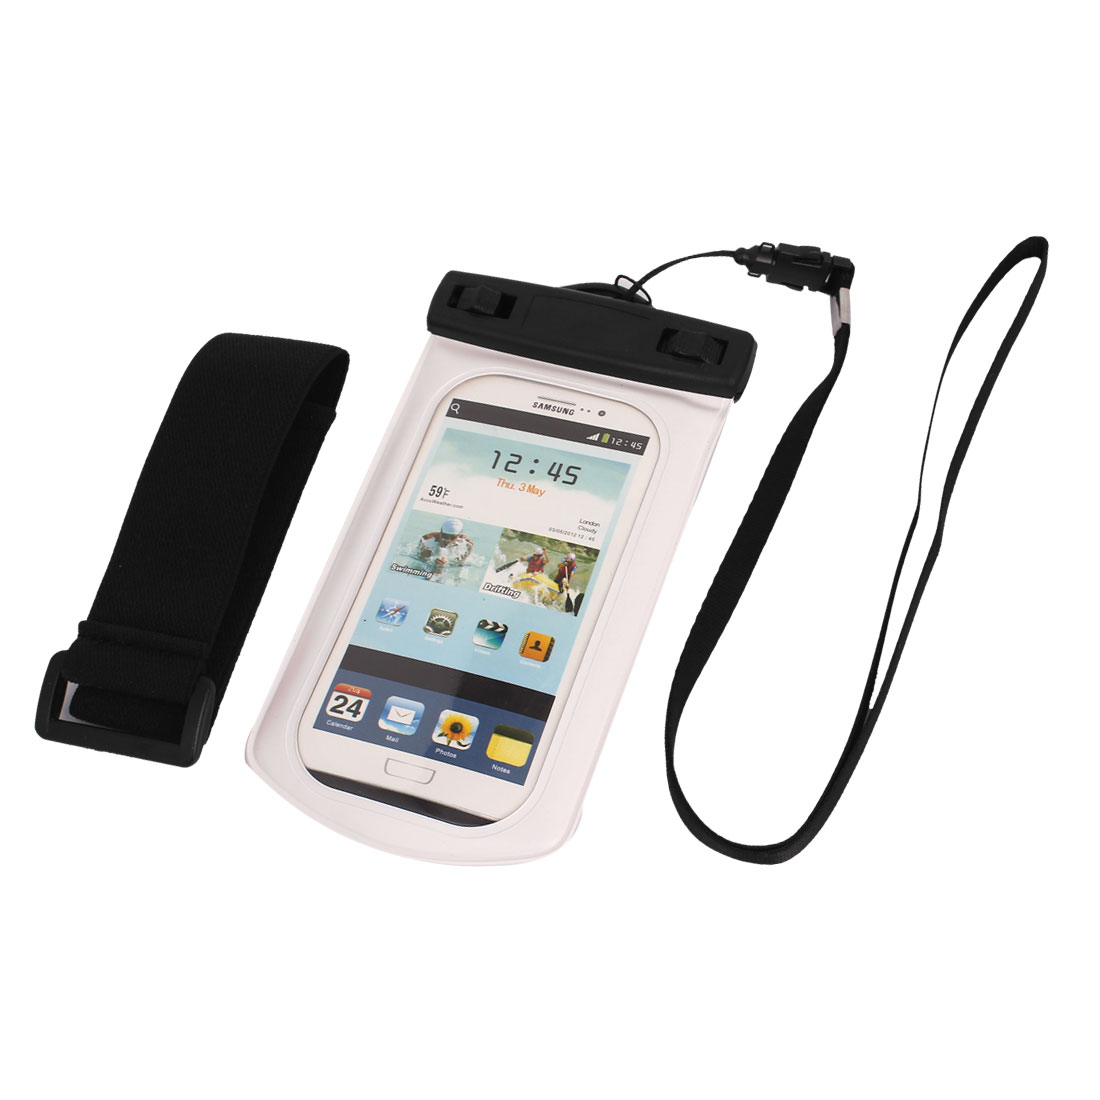 "Waterproof Case Dry Bag Cover Pouch Holder White for 4.7"" Cell Phone"